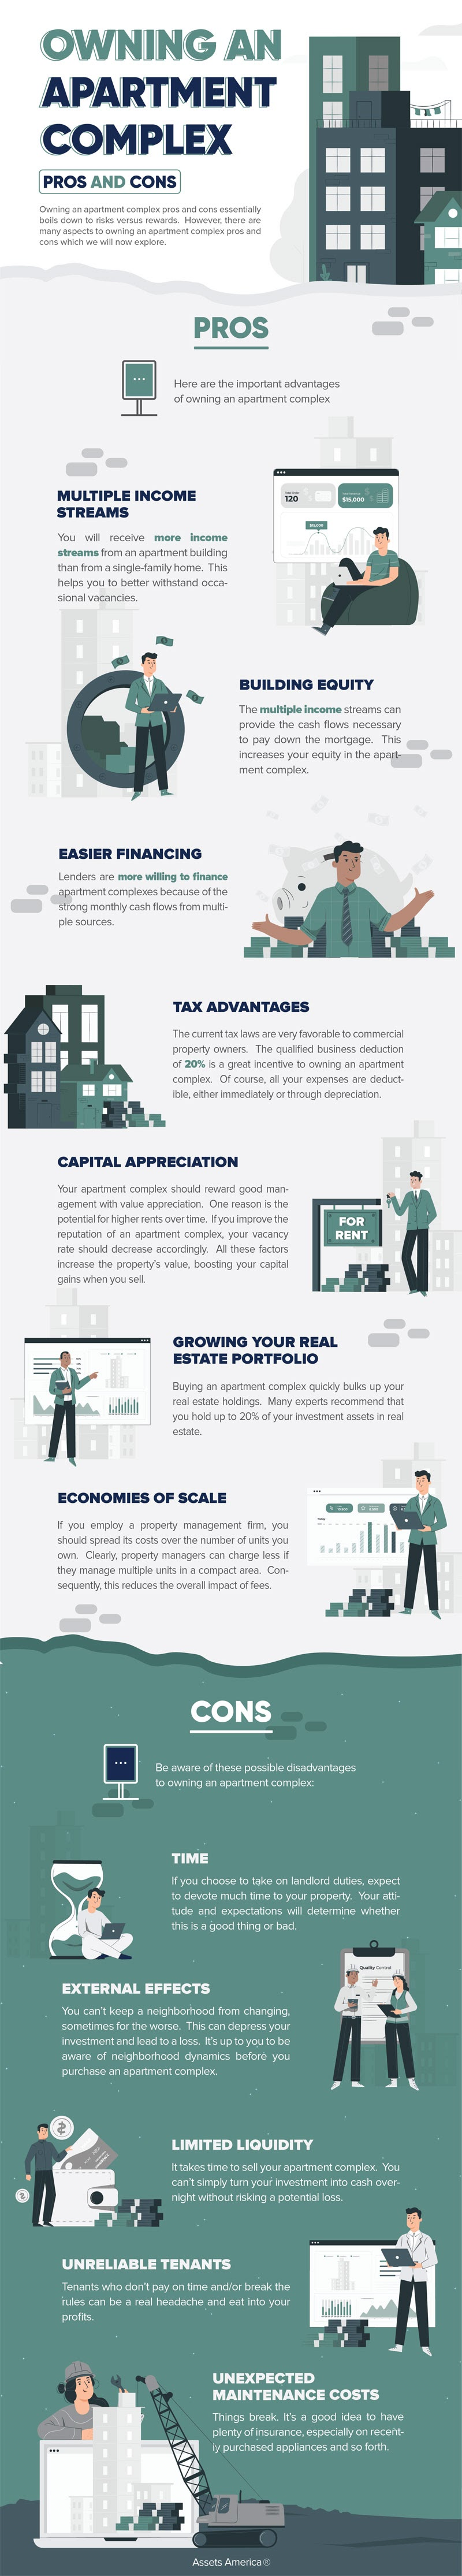 Owning an Apartment Complex – Profitability Pros & Cons #infographic